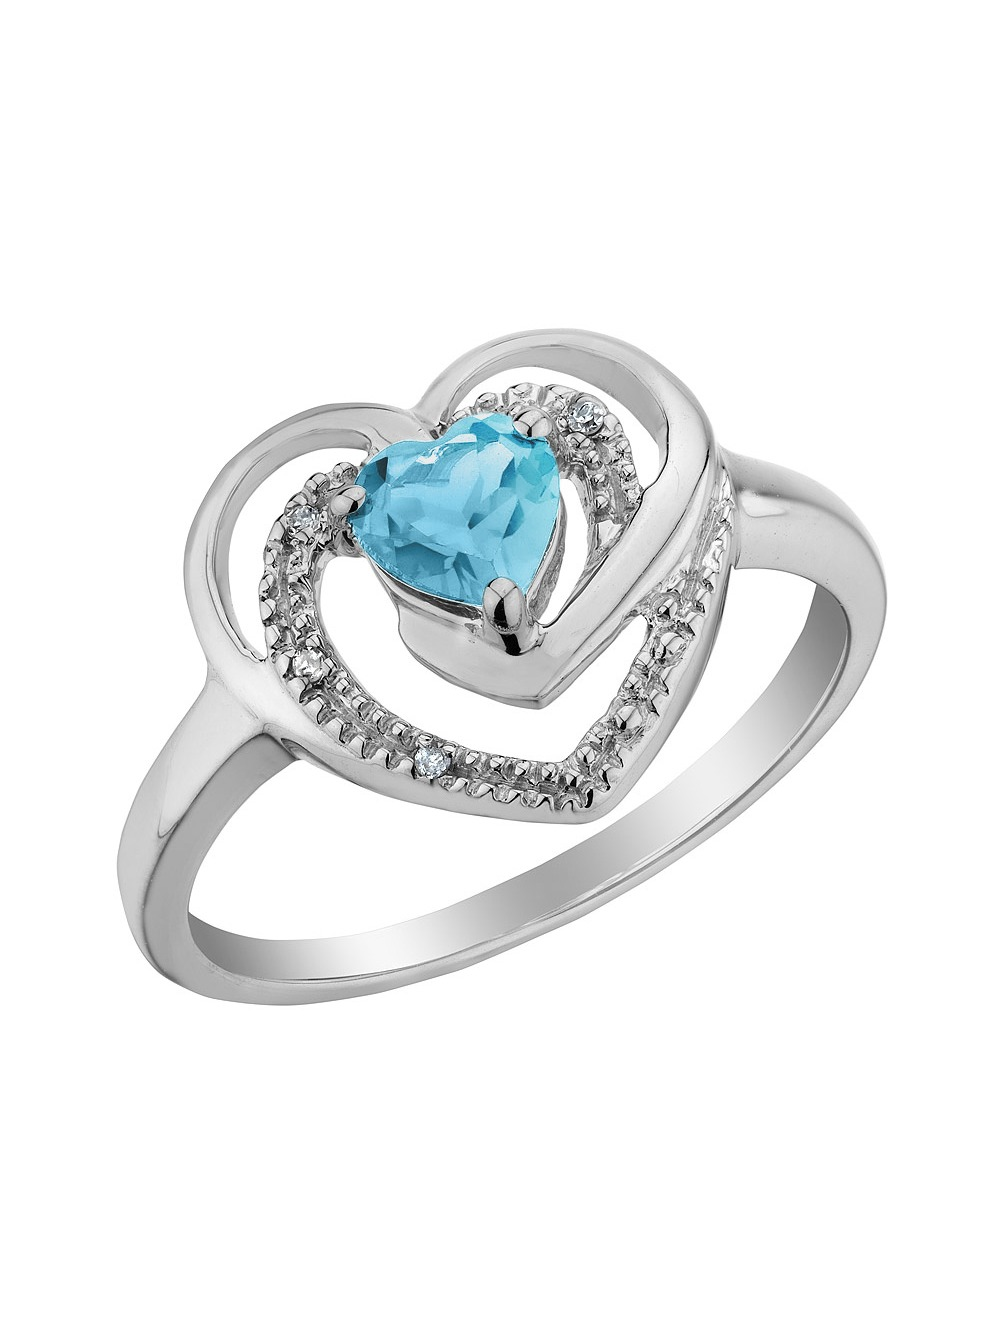 Blue Topaz Heart Ring with Diamonds 2/5 Carat (ctw) in Sterling Silver